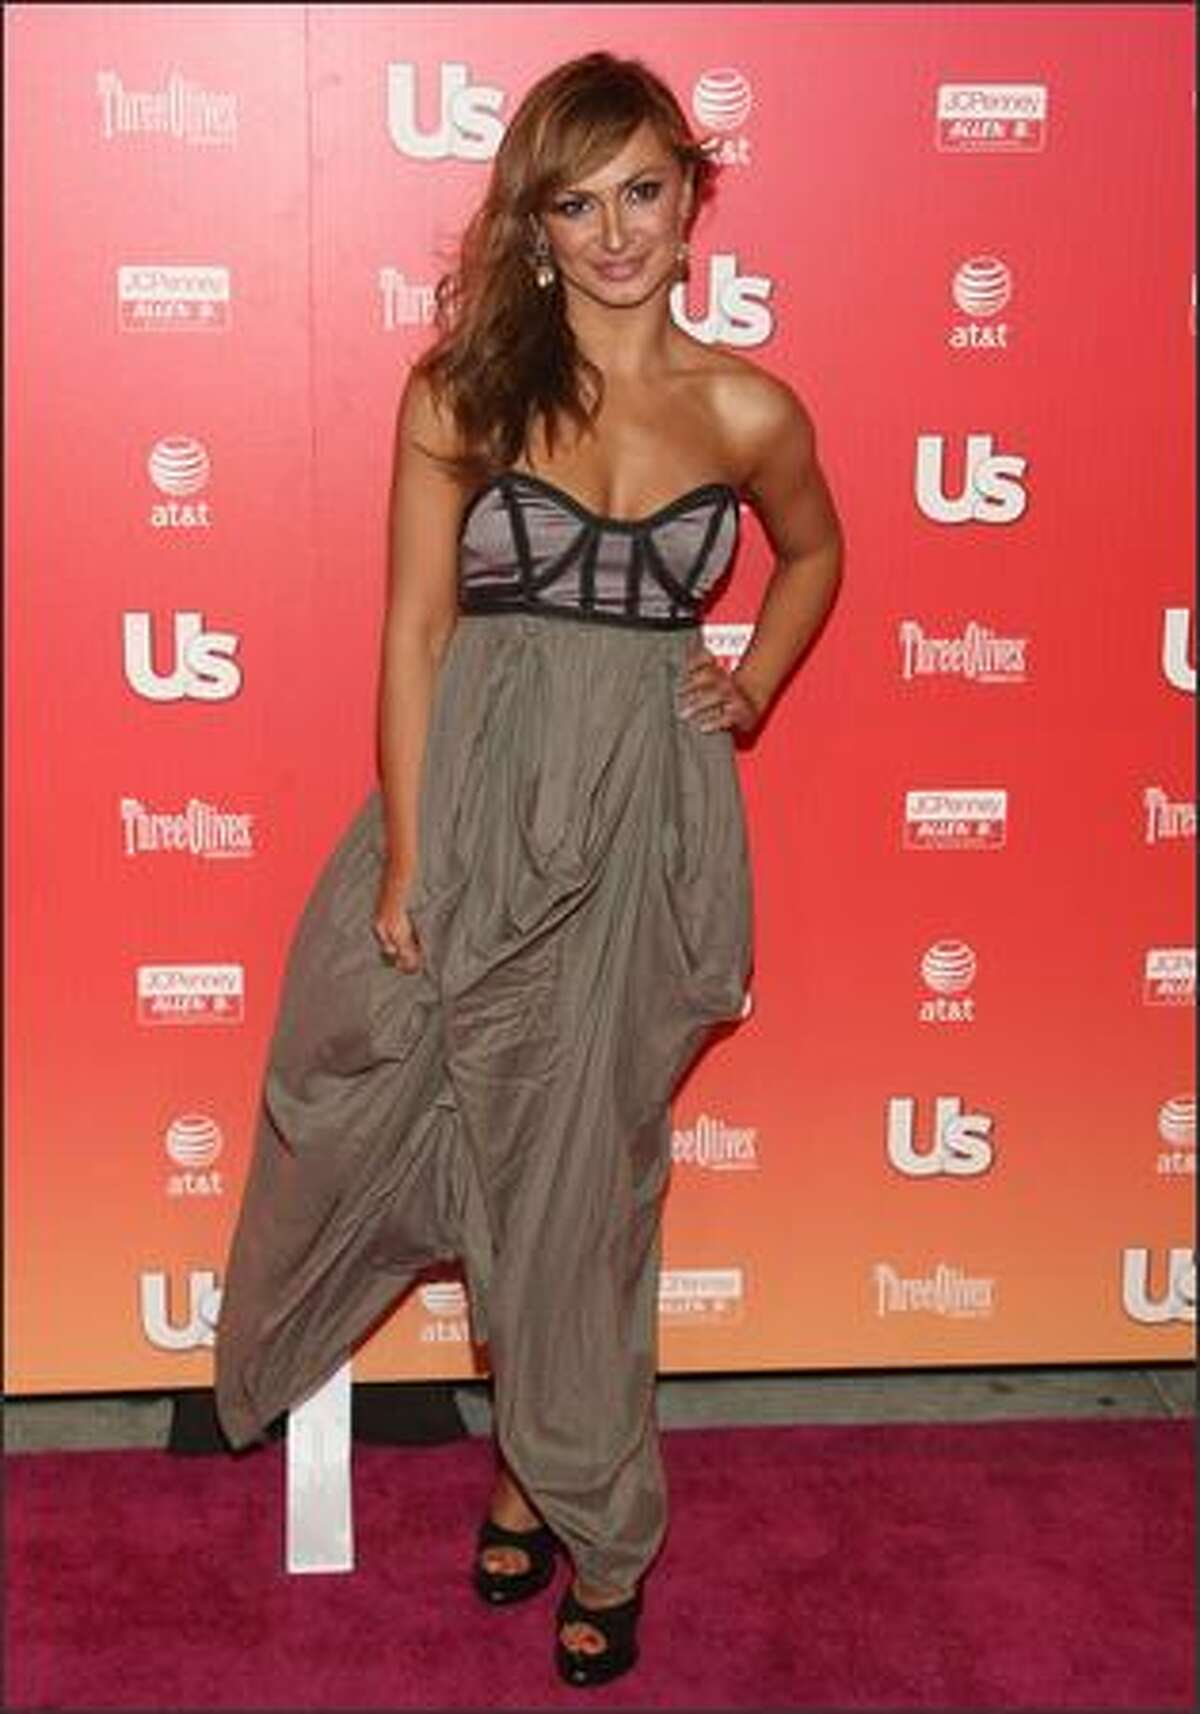 Professional dancer Karina Smirnoff arrives at the Us Weekly Hot Hollywood Party held at My House nightclub in Los Angeles.